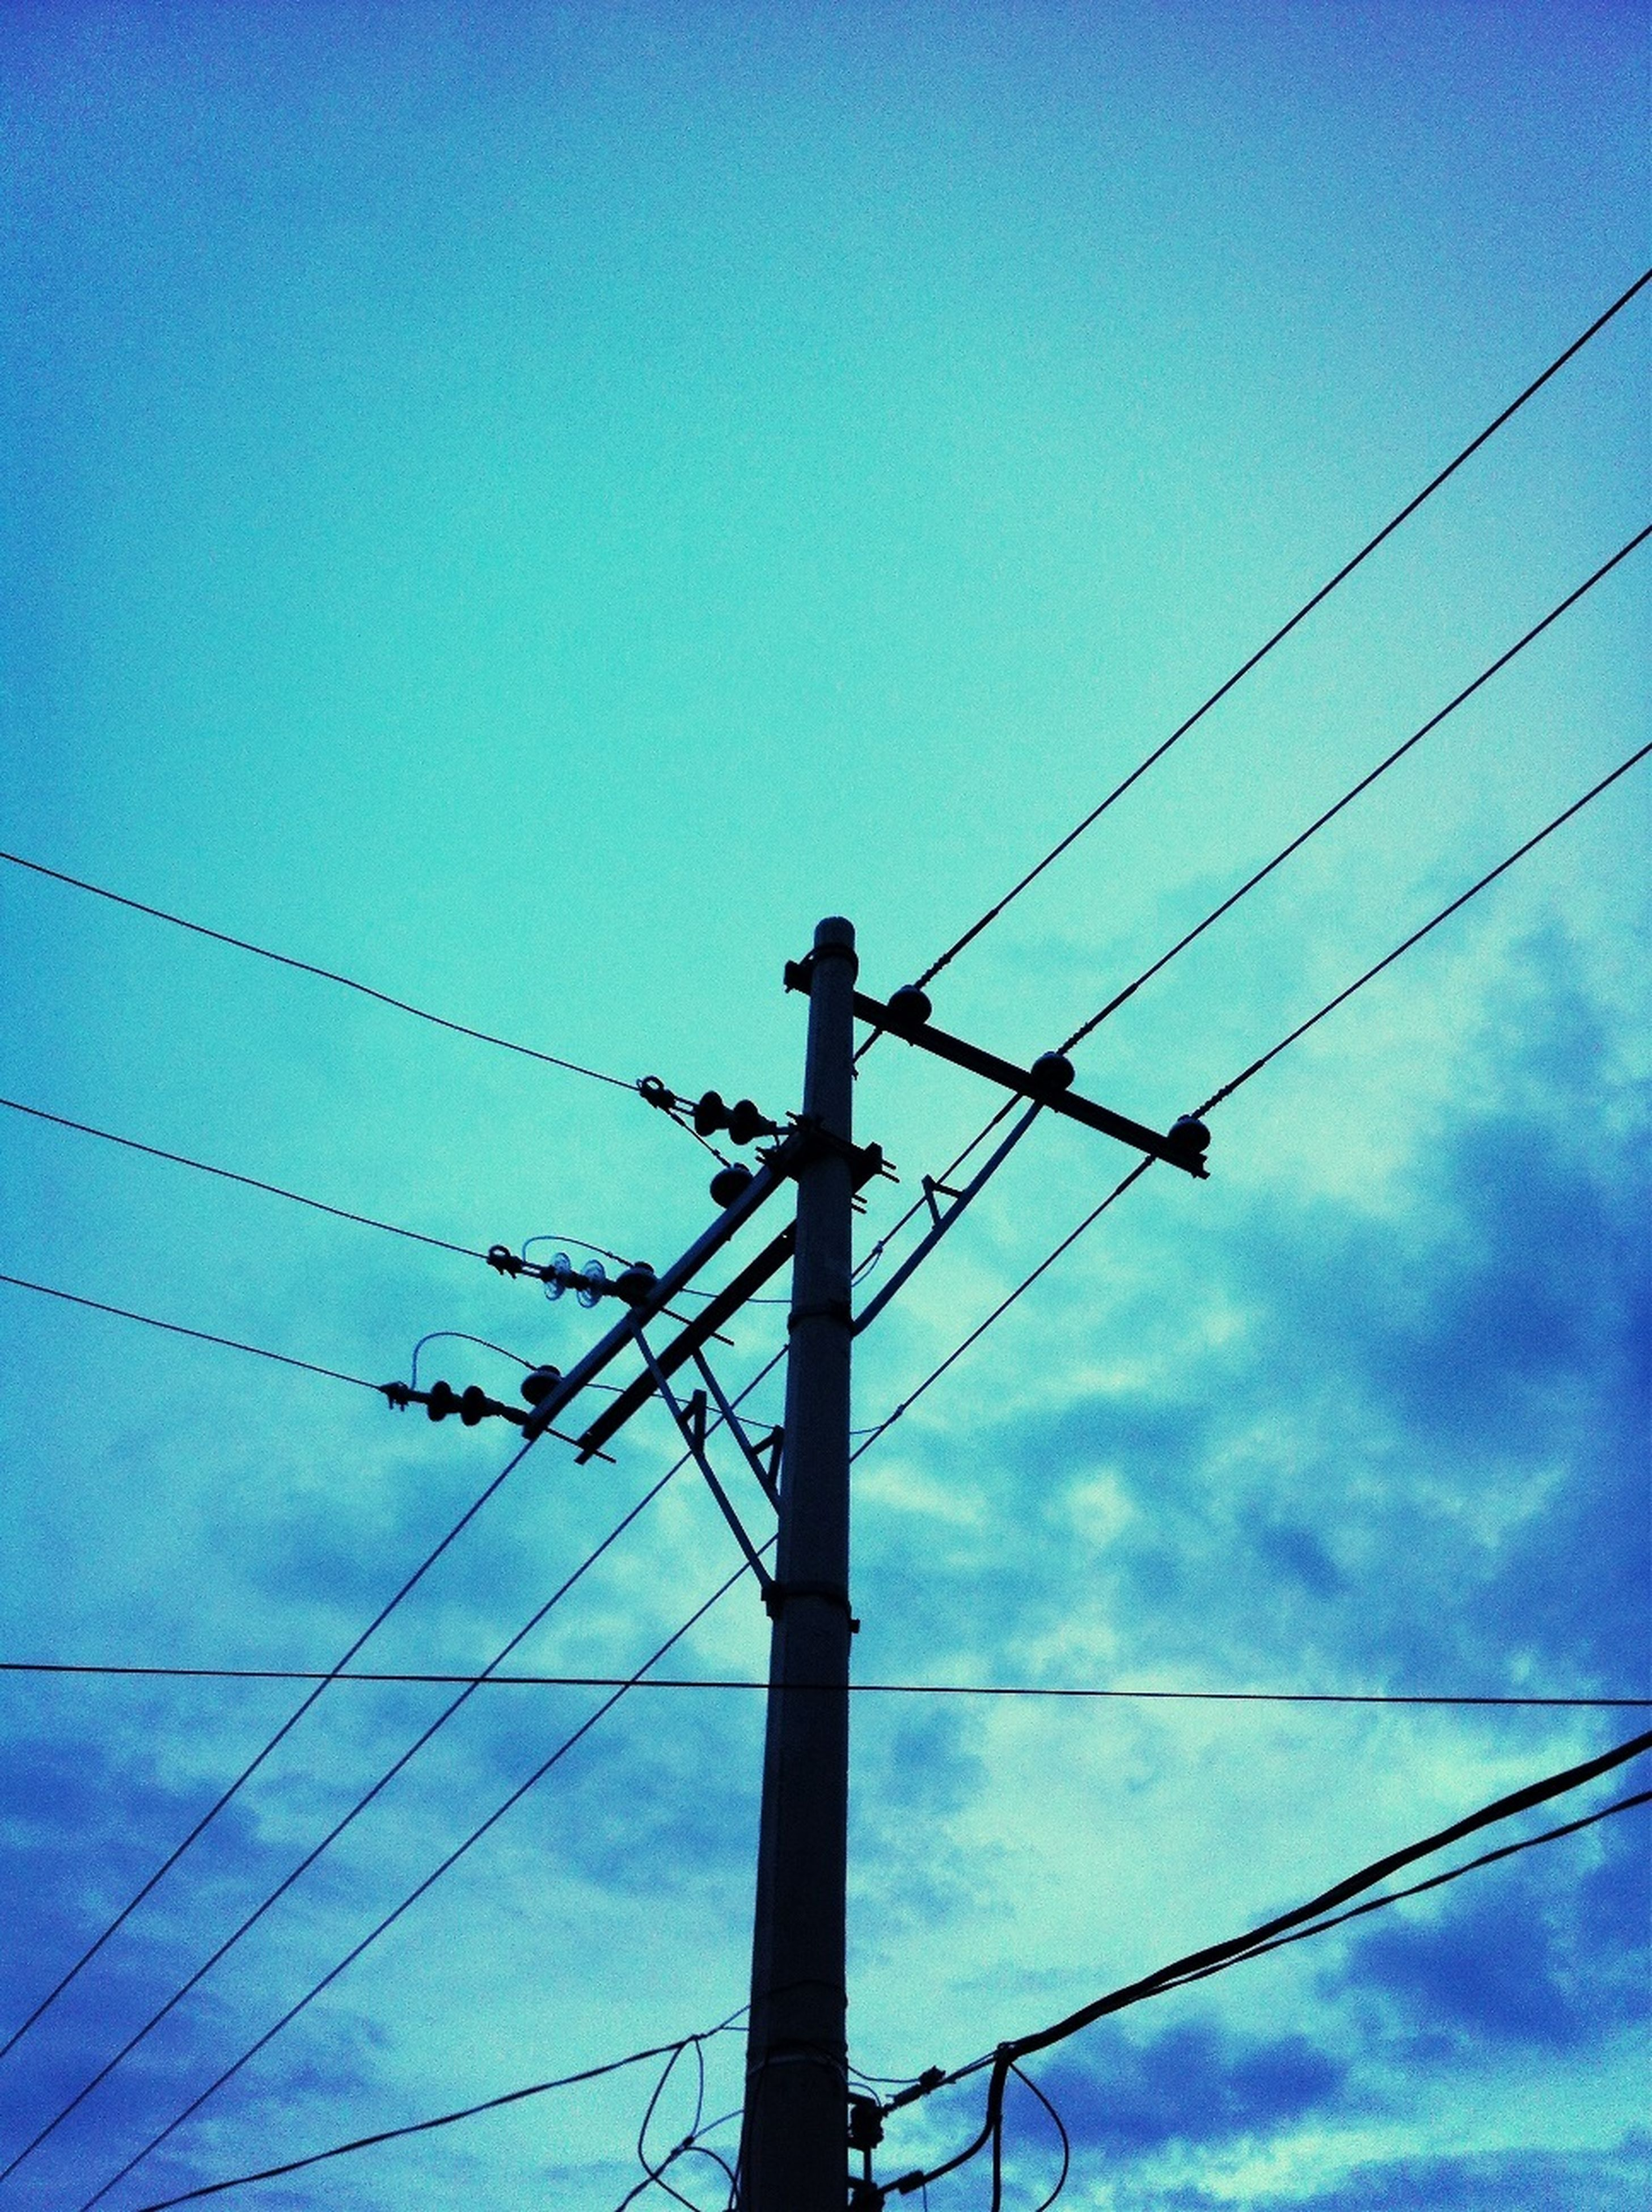 power line, power supply, electricity, low angle view, electricity pylon, connection, cable, fuel and power generation, technology, sky, silhouette, blue, power cable, electricity tower, dusk, outdoors, pole, complexity, no people, telephone pole